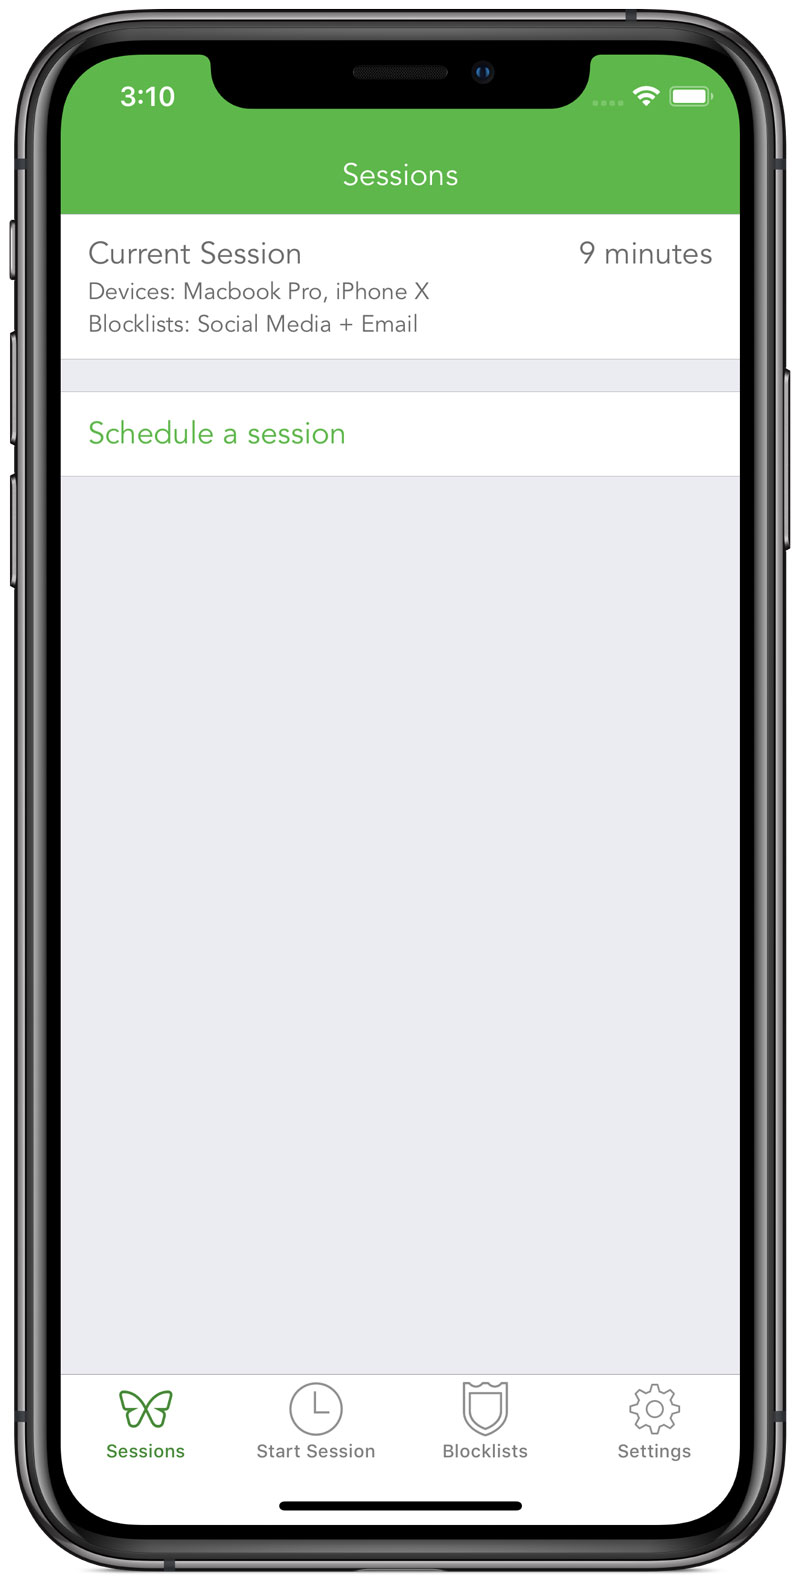 A screenshot showing one active session that is running on your Macbook Pro and iPhone X, blocking social media and email. A countdown indicates that there are 9 minutes remaining before the session ends.